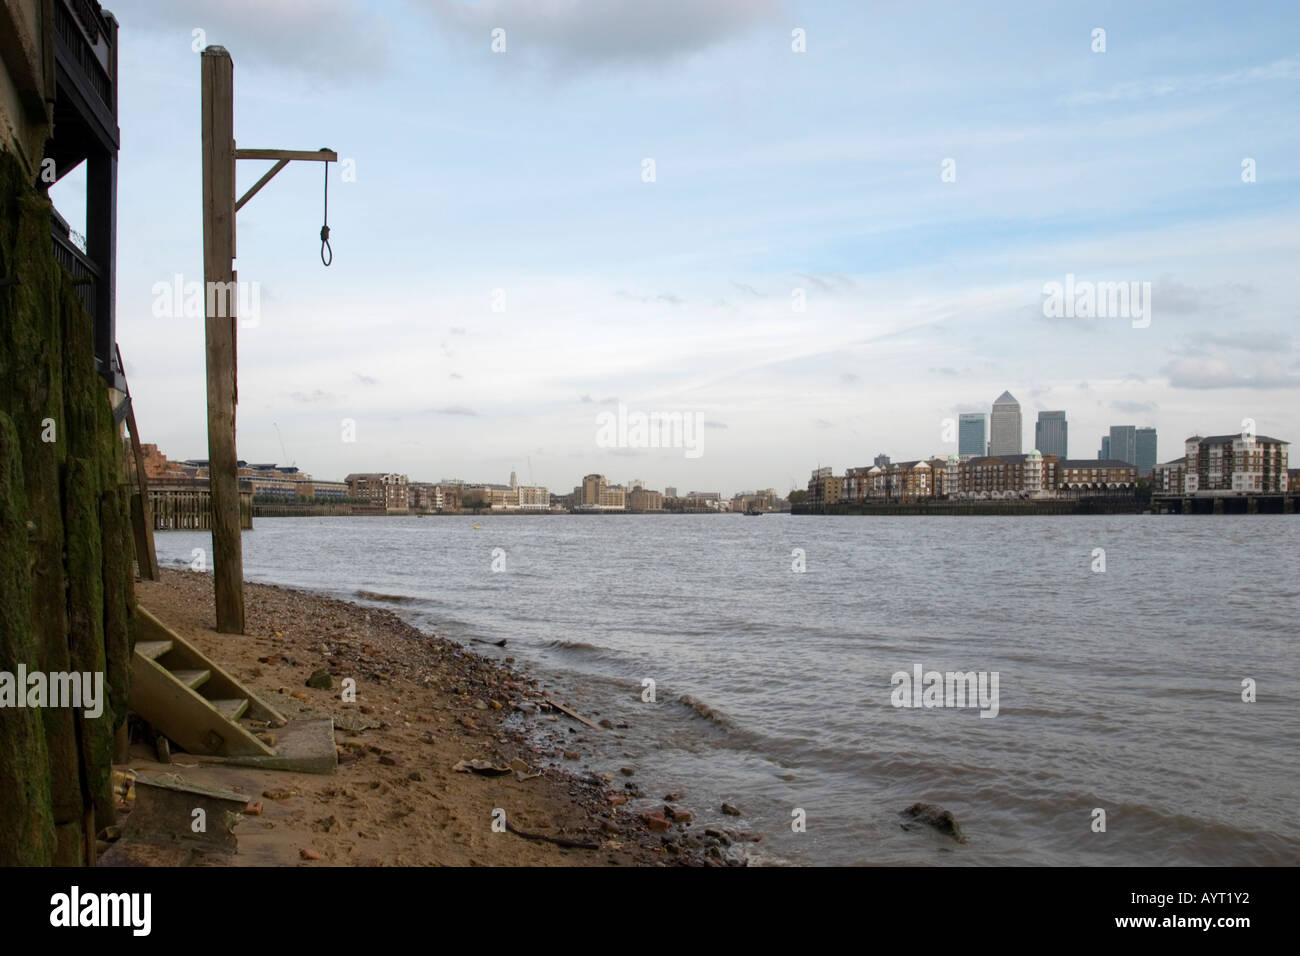 Gallows beside the River Thames at the Prospect of Whitby pub, Shadwell, London, England, UK - Stock Image